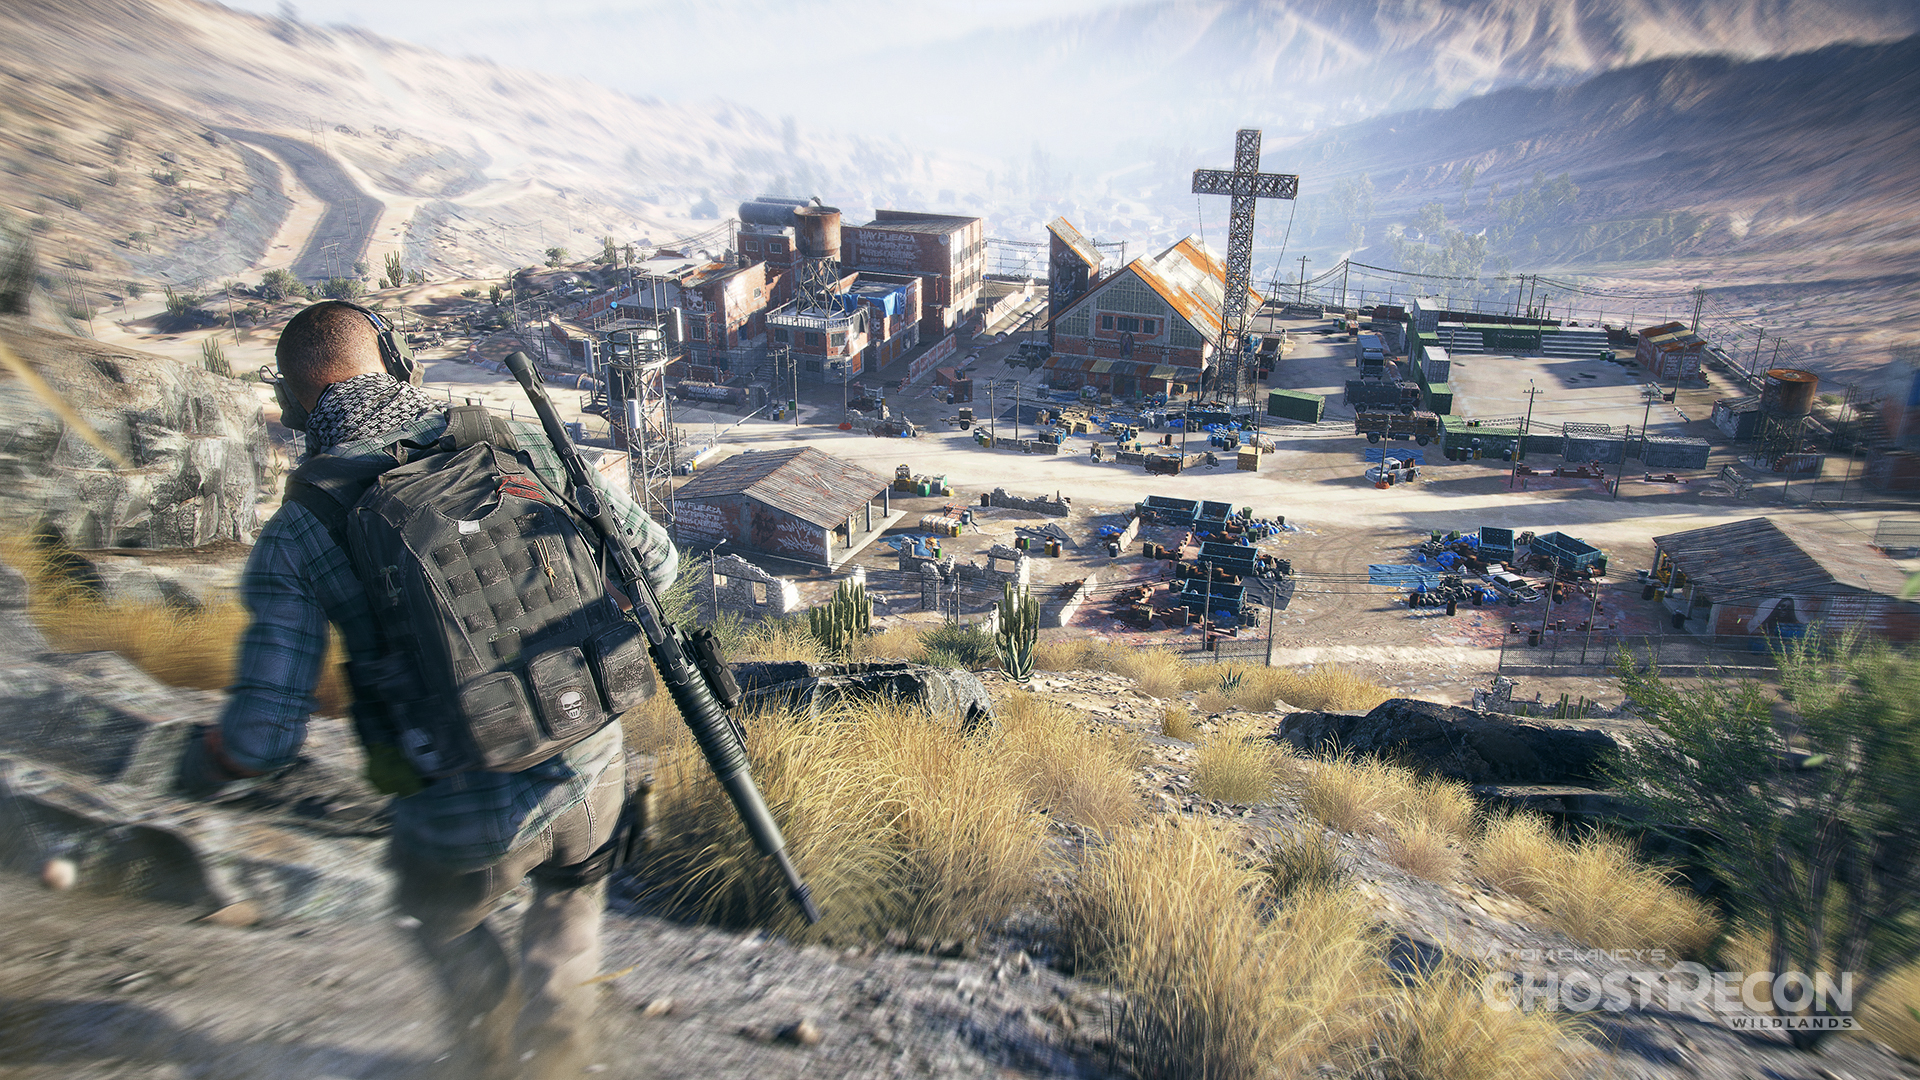 Don Winslow and Shane Salerno, have teamed up with Ubisoft to create the cartel-themed narrative for Tom Clancy's Ghost Recon Wildlands